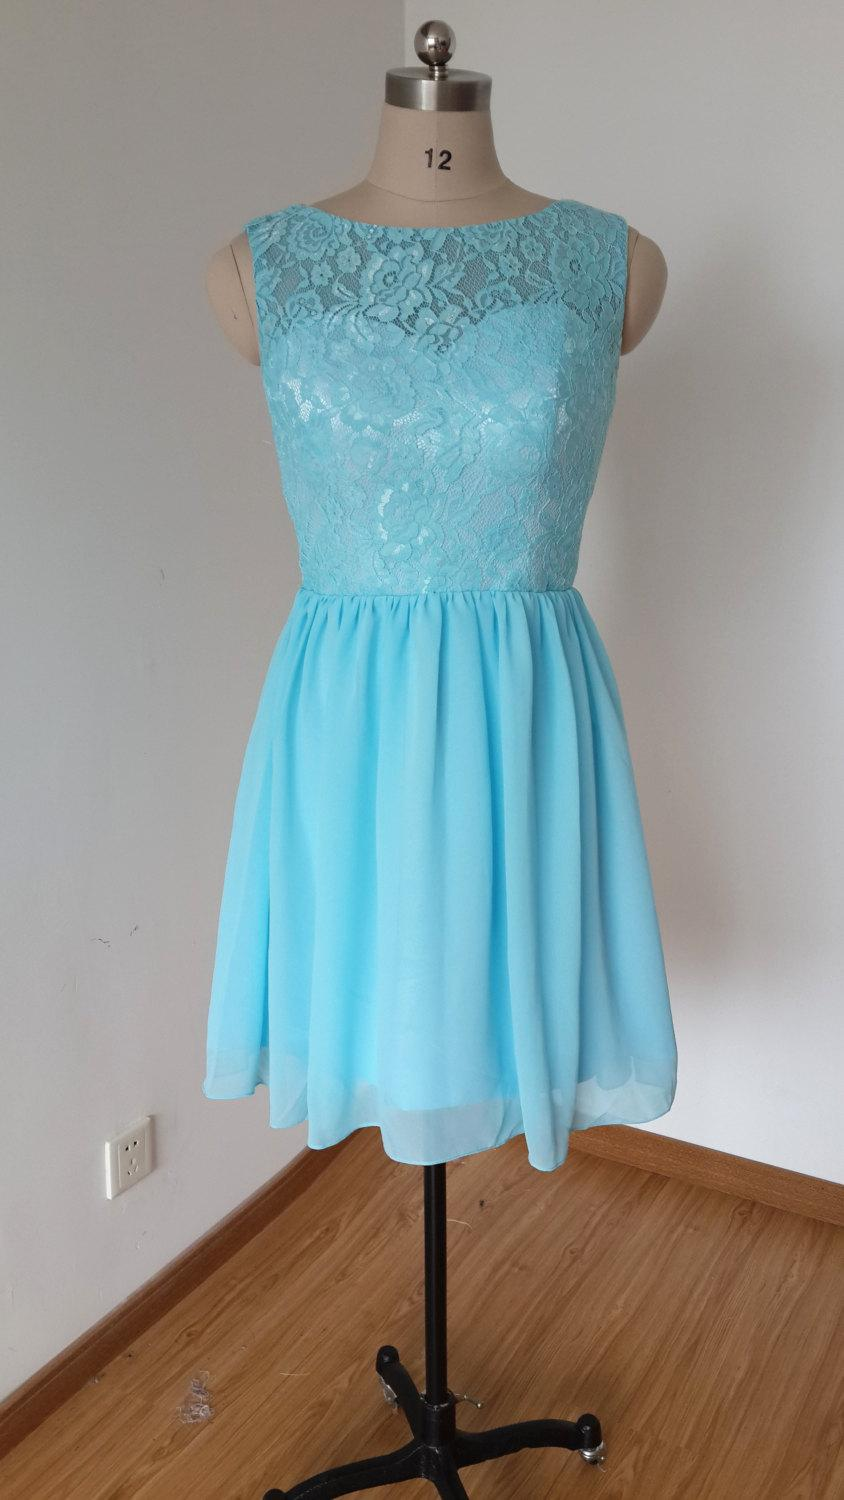 Nozze - 2015 Scoop Blue Lace Chiffon Short Bridesmaid Dress with Back Buttons